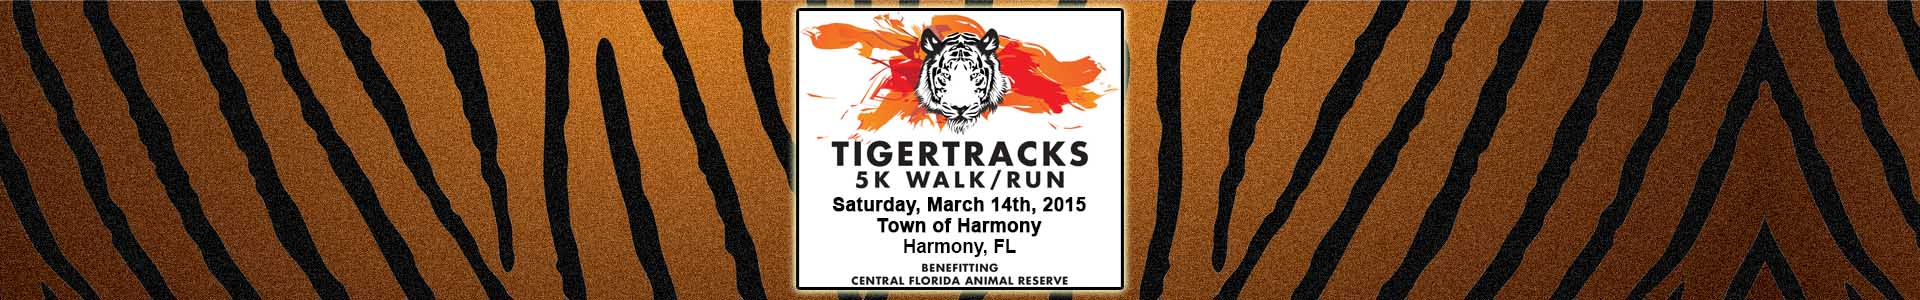 TigerTracks5K-Feature2014a